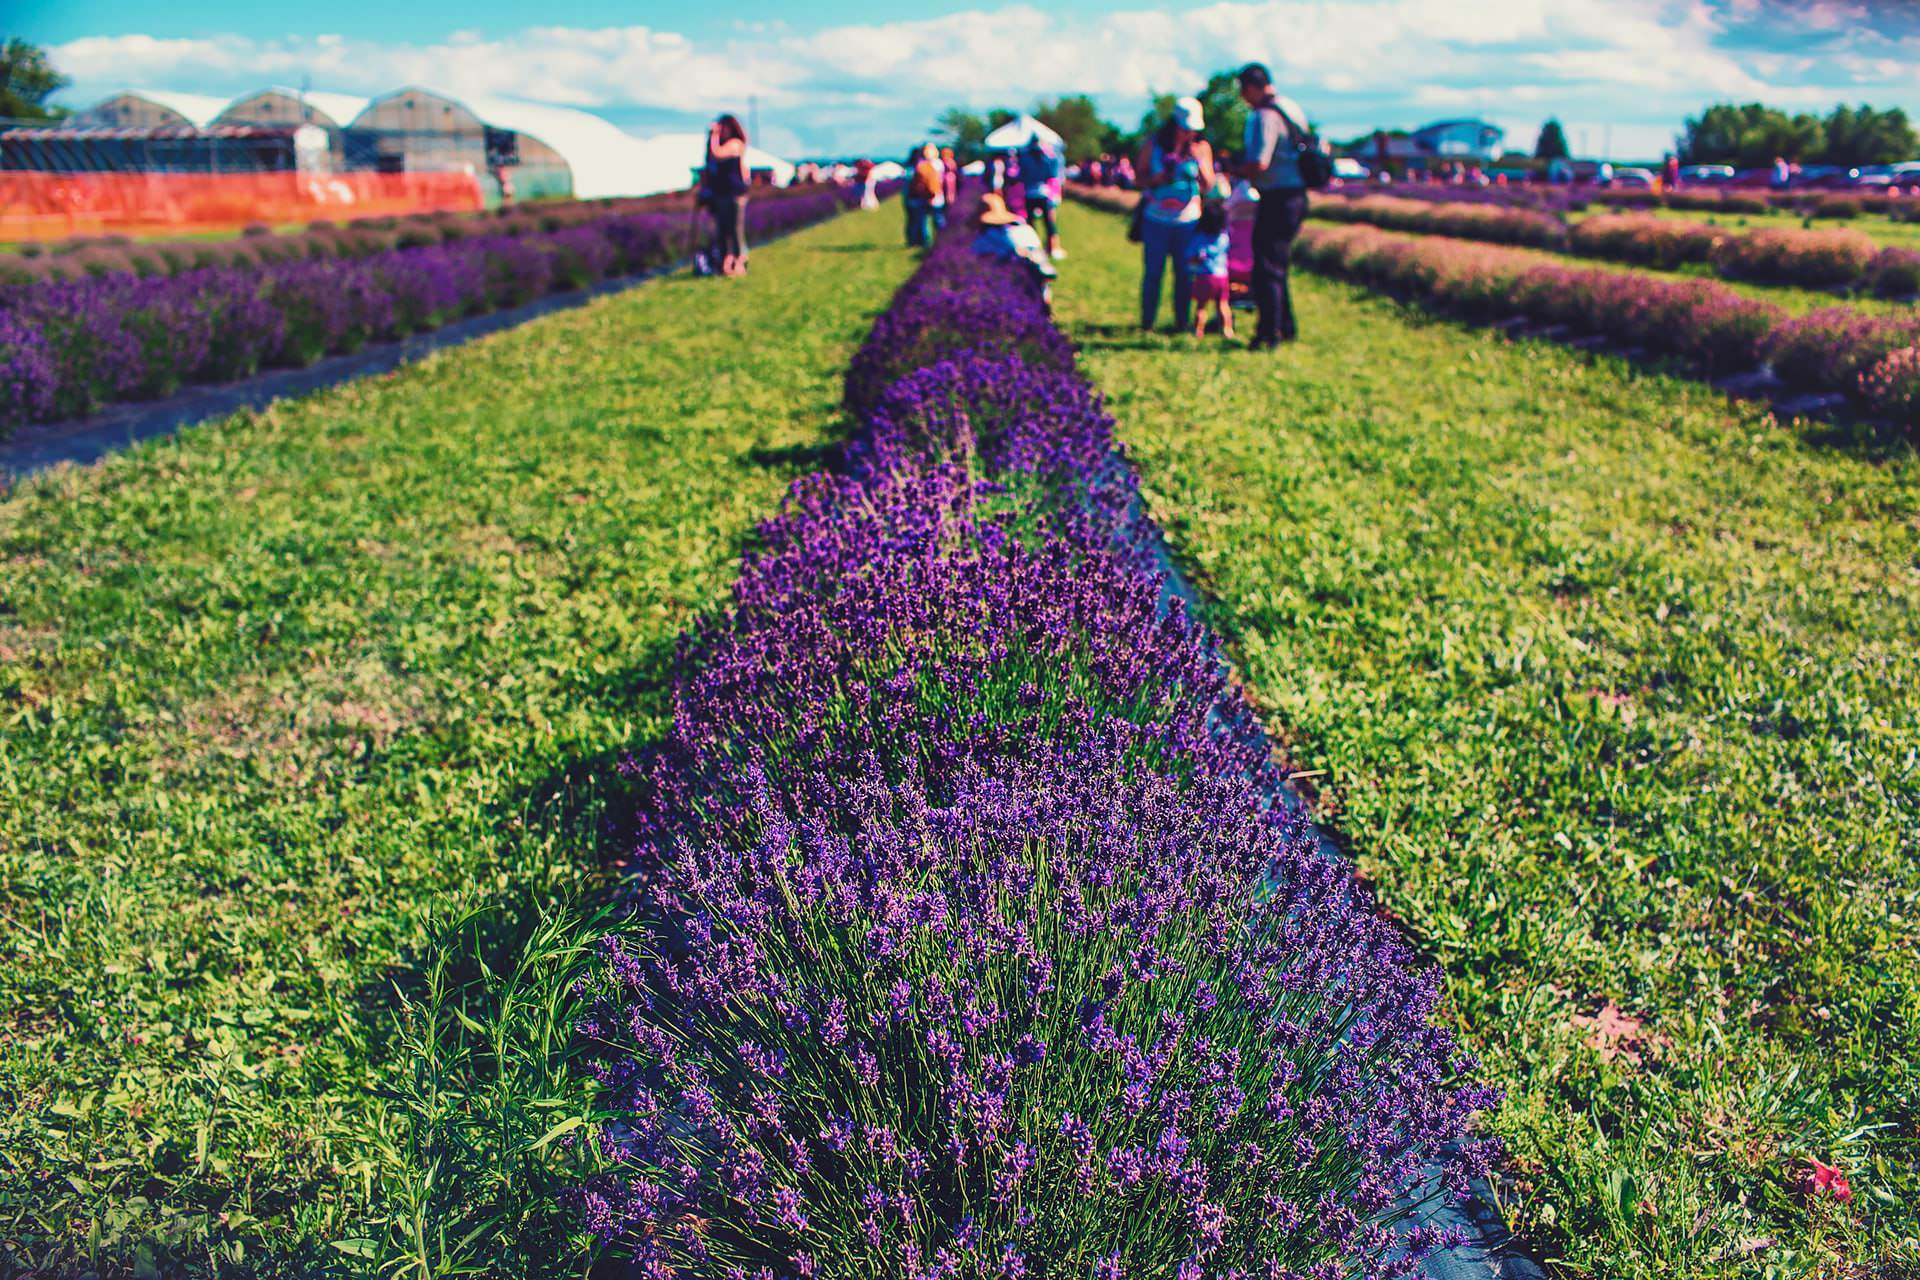 Lavender field at neob lavender in Niagara Fall